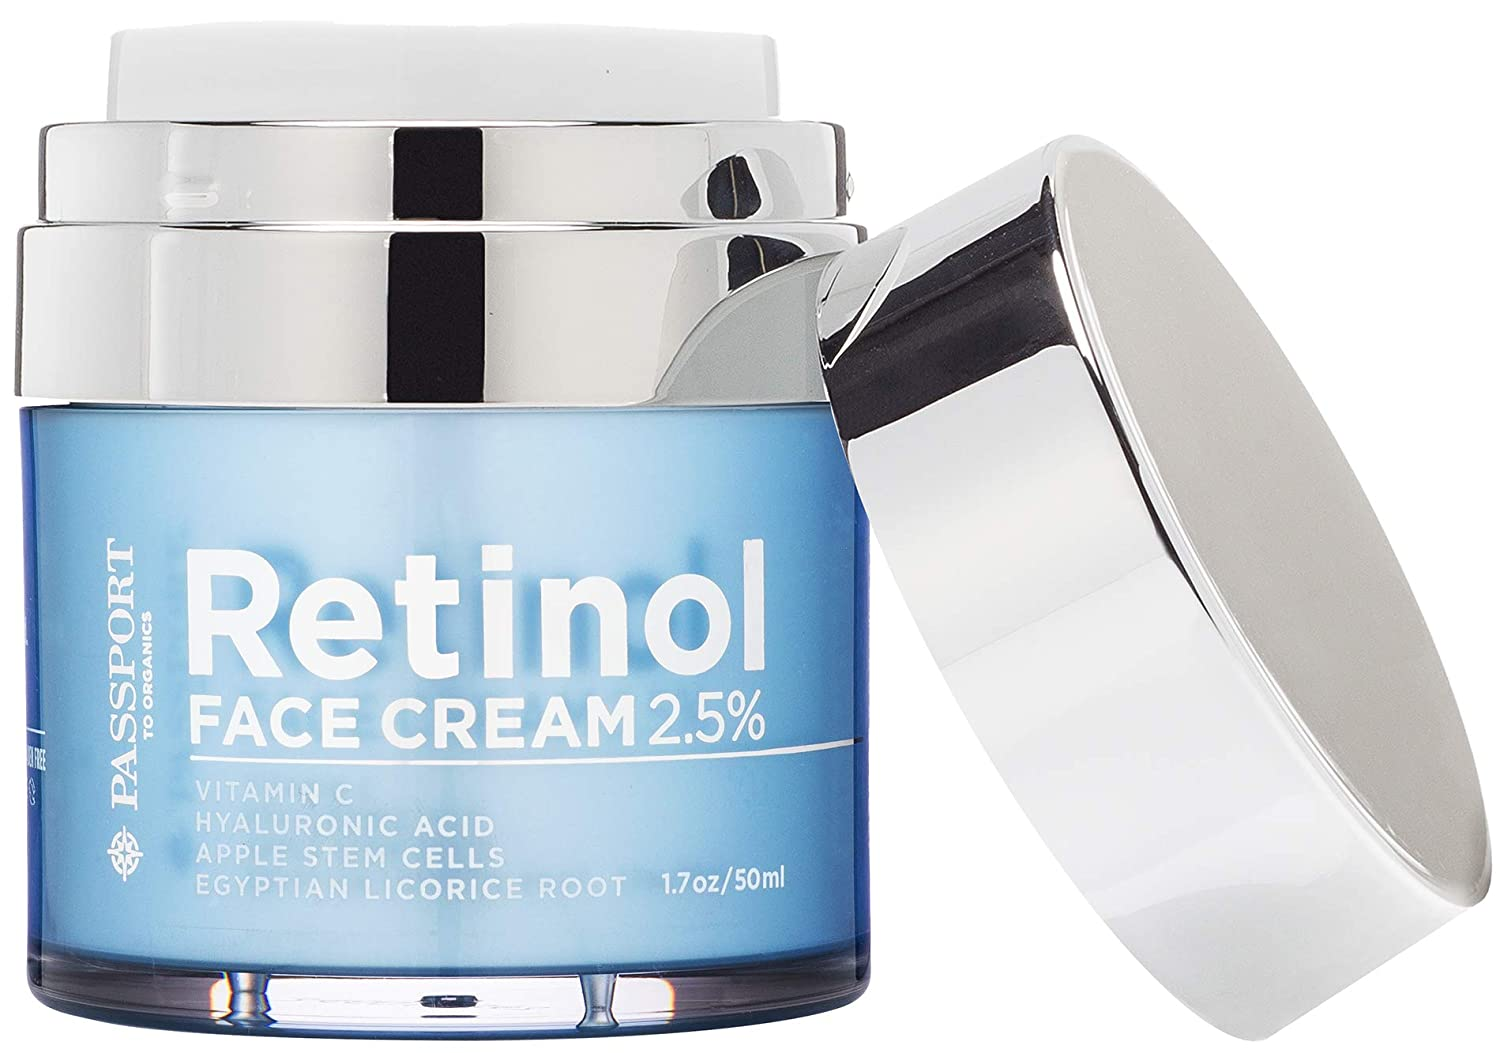 Passport to Organics Retinol 2.5% High Potency Face Cream - Anti-Aging Cream - Organic Moisturizing Cream with Vitamin C, Hyaluronic Acid & Essential Oils - Retinol Moisturizer for Dry Skin - 1.7oz